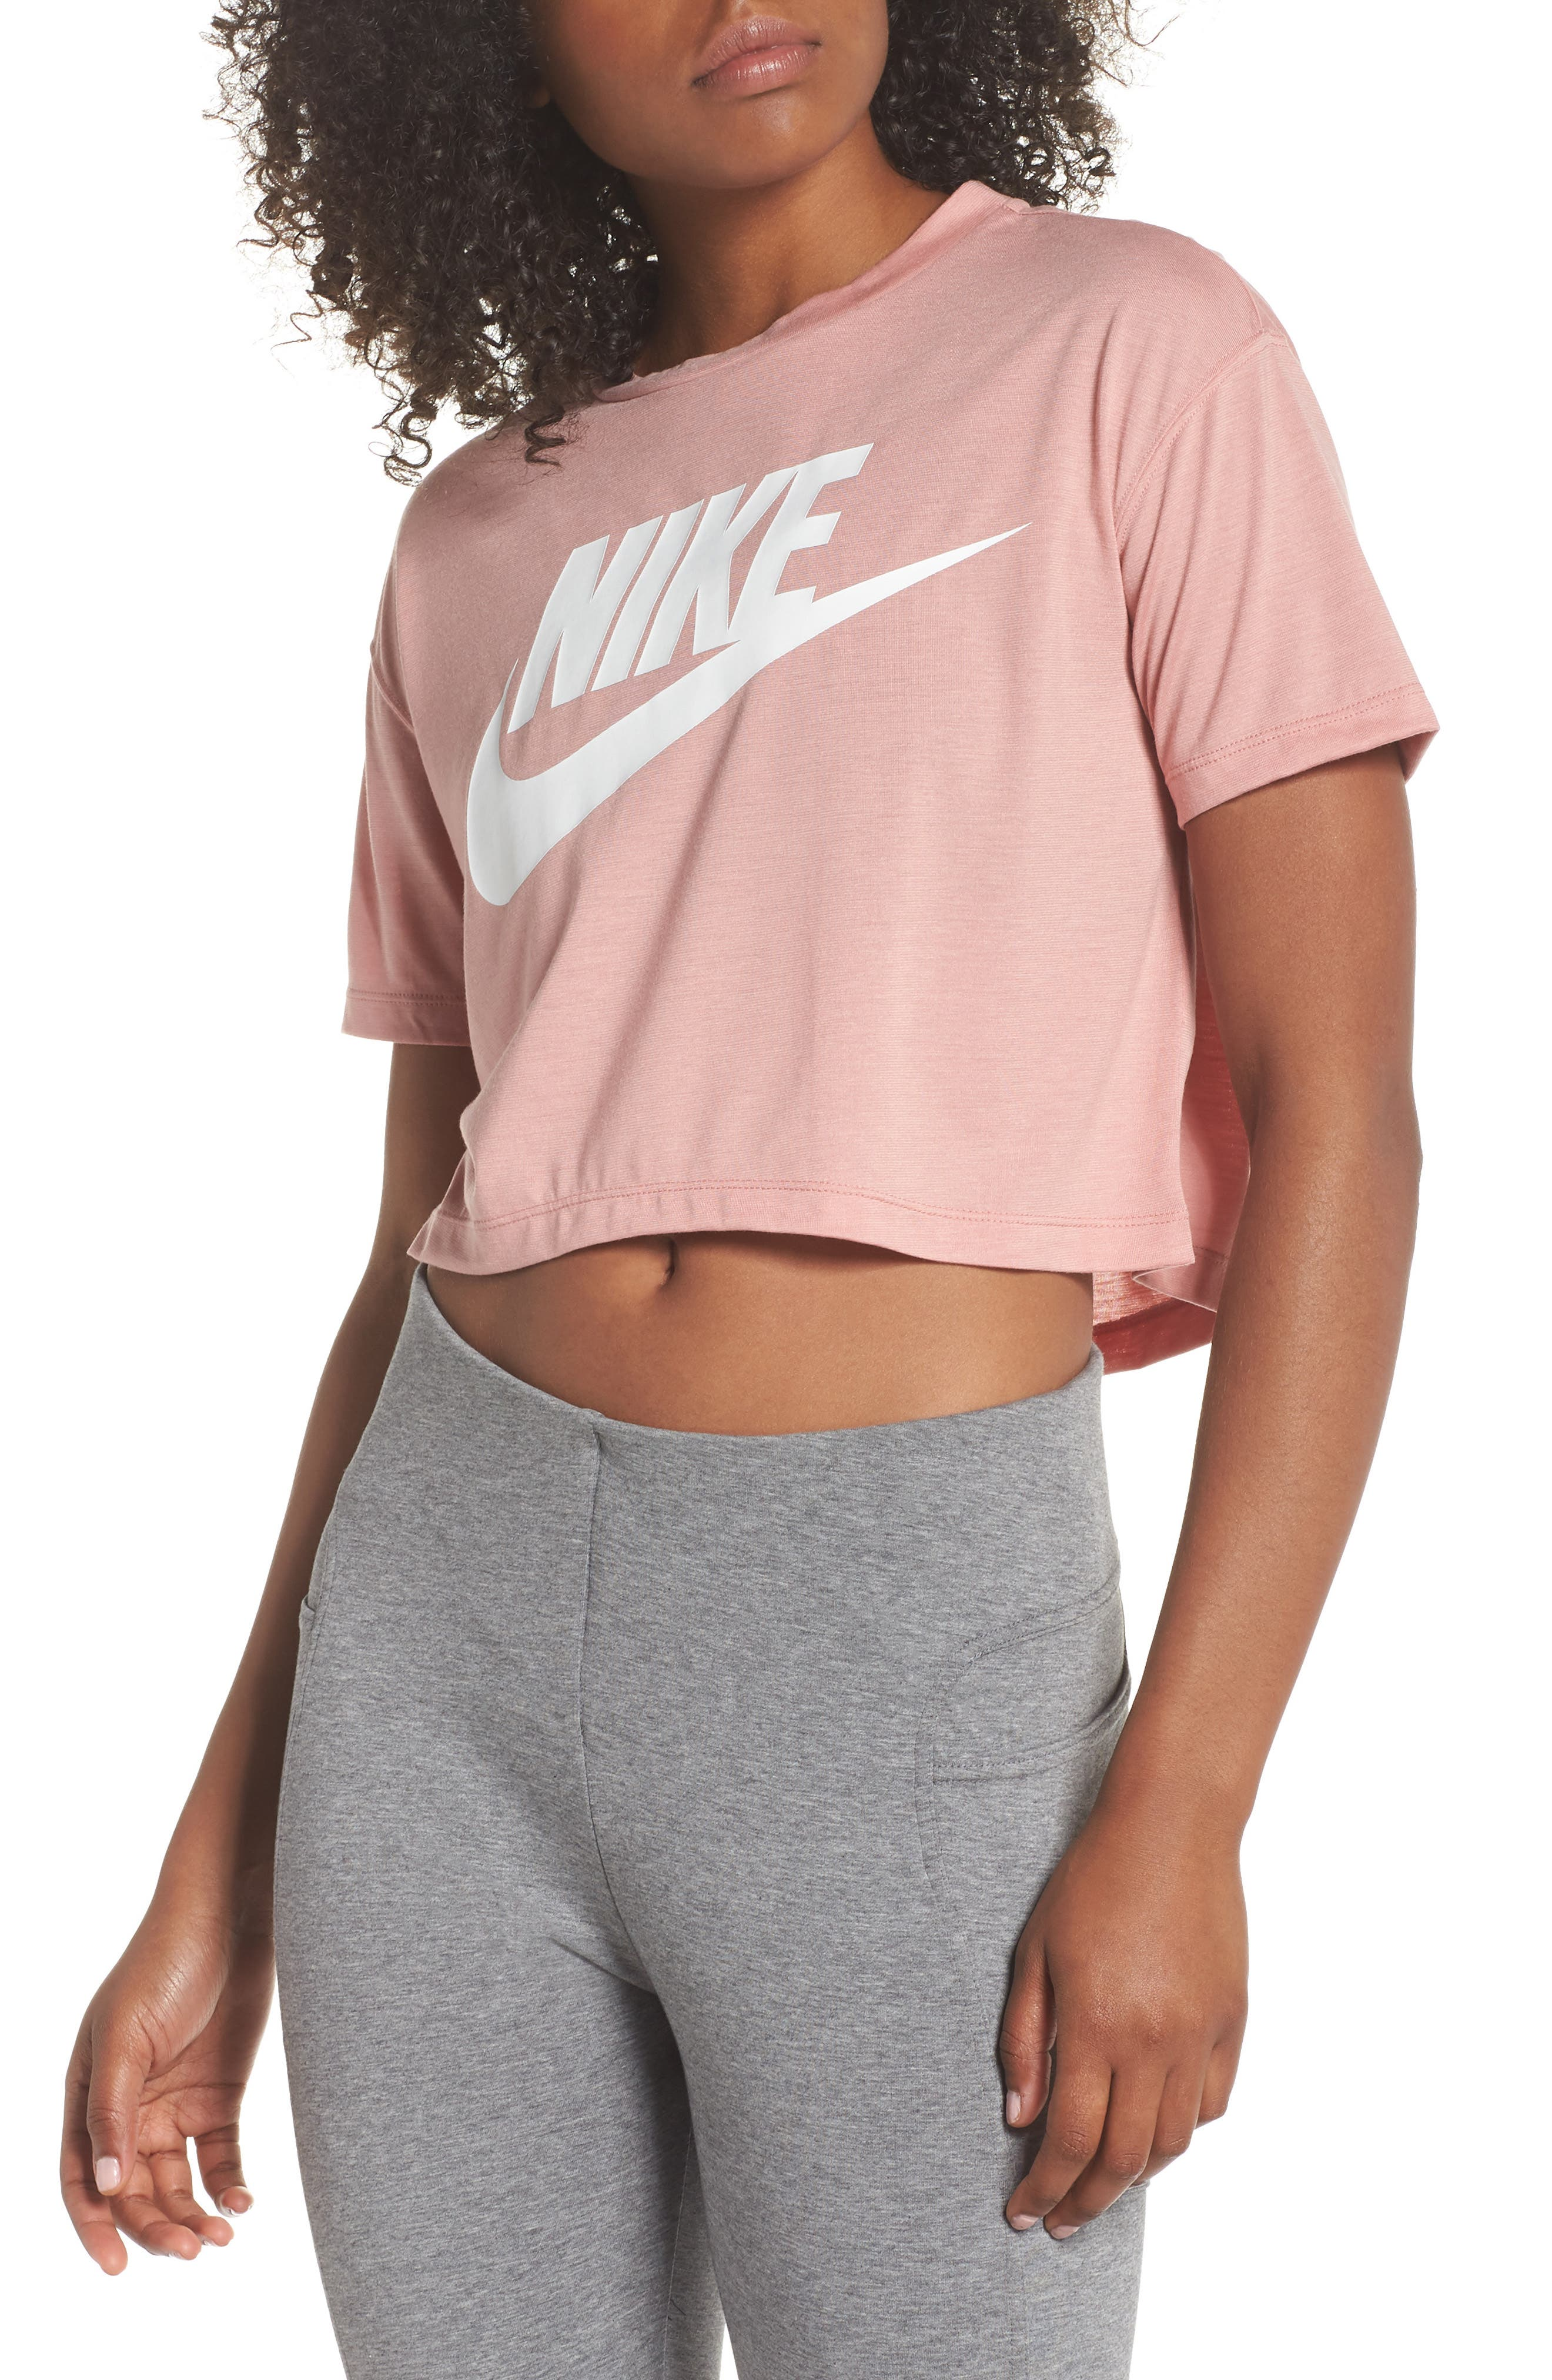 Sportswear Crop Top,                             Main thumbnail 1, color,                             Rust Pink/ White